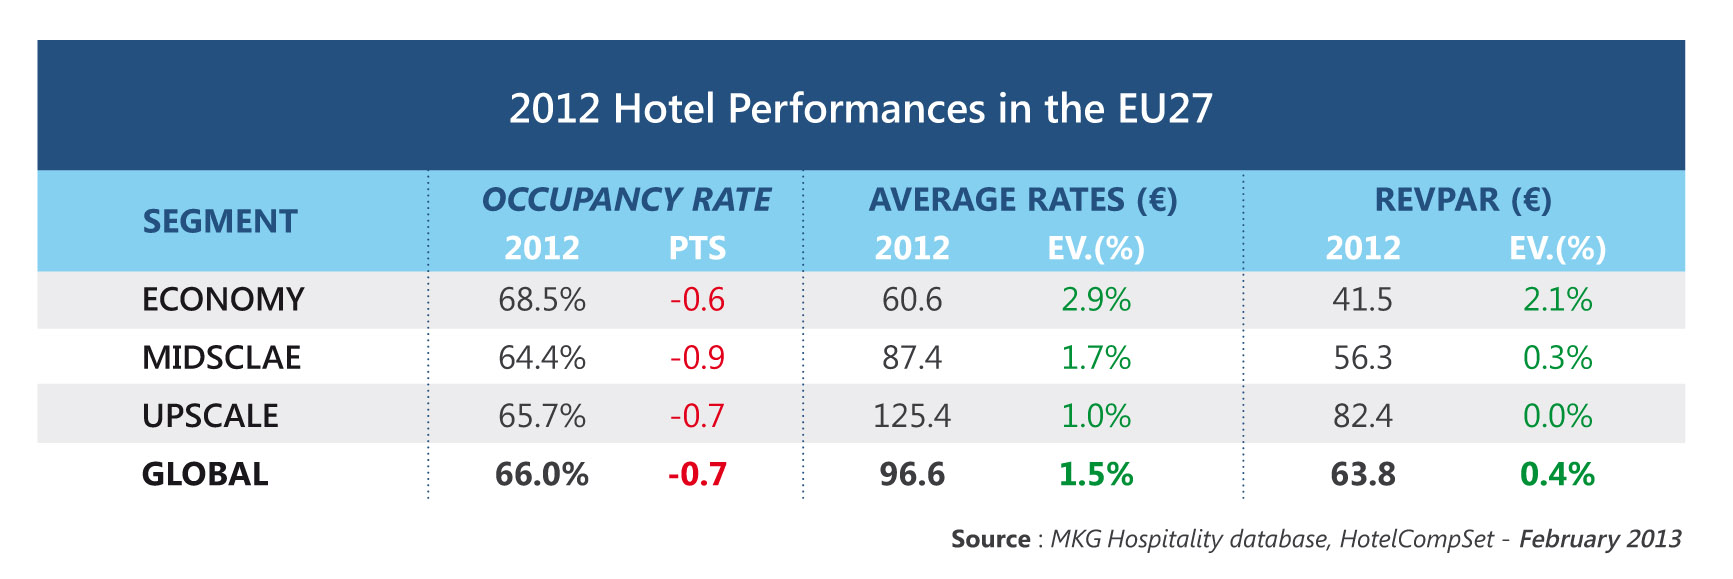 Stability For Hotel Chains In Europe In 2012 Hospitality On